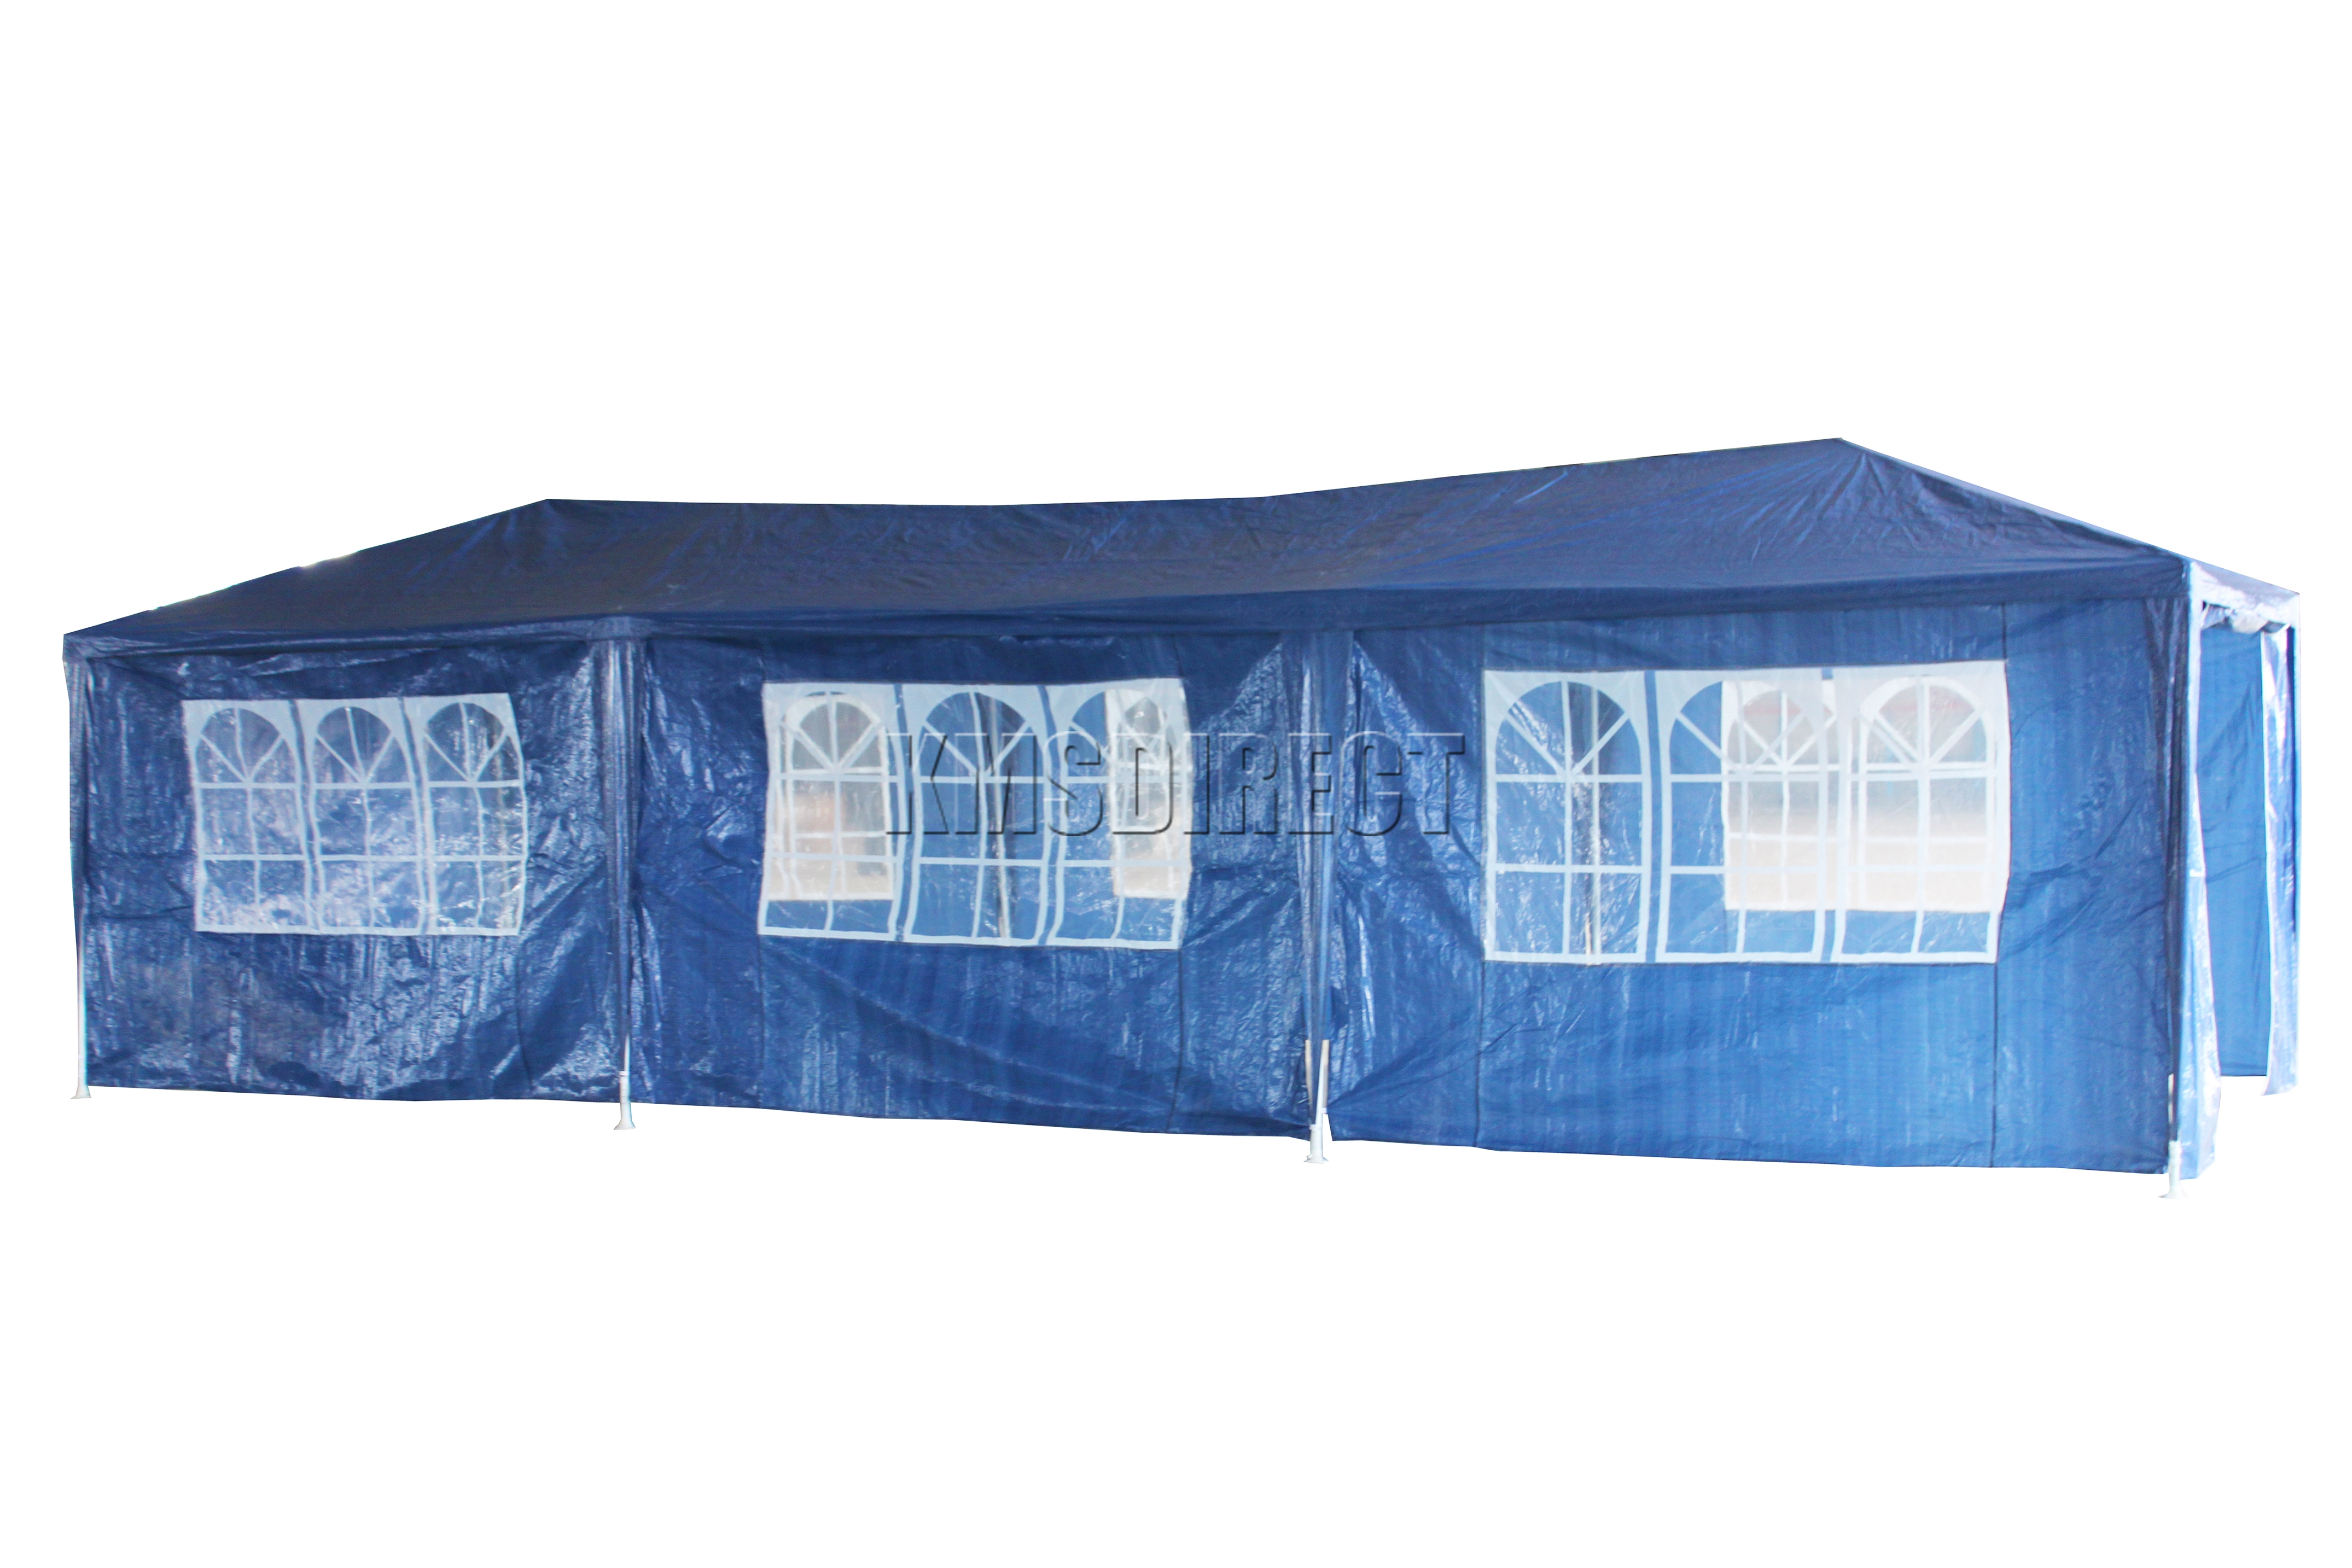 Waterproof Blue 3m x 9m Outdoor Garden Gazebo Party Tent